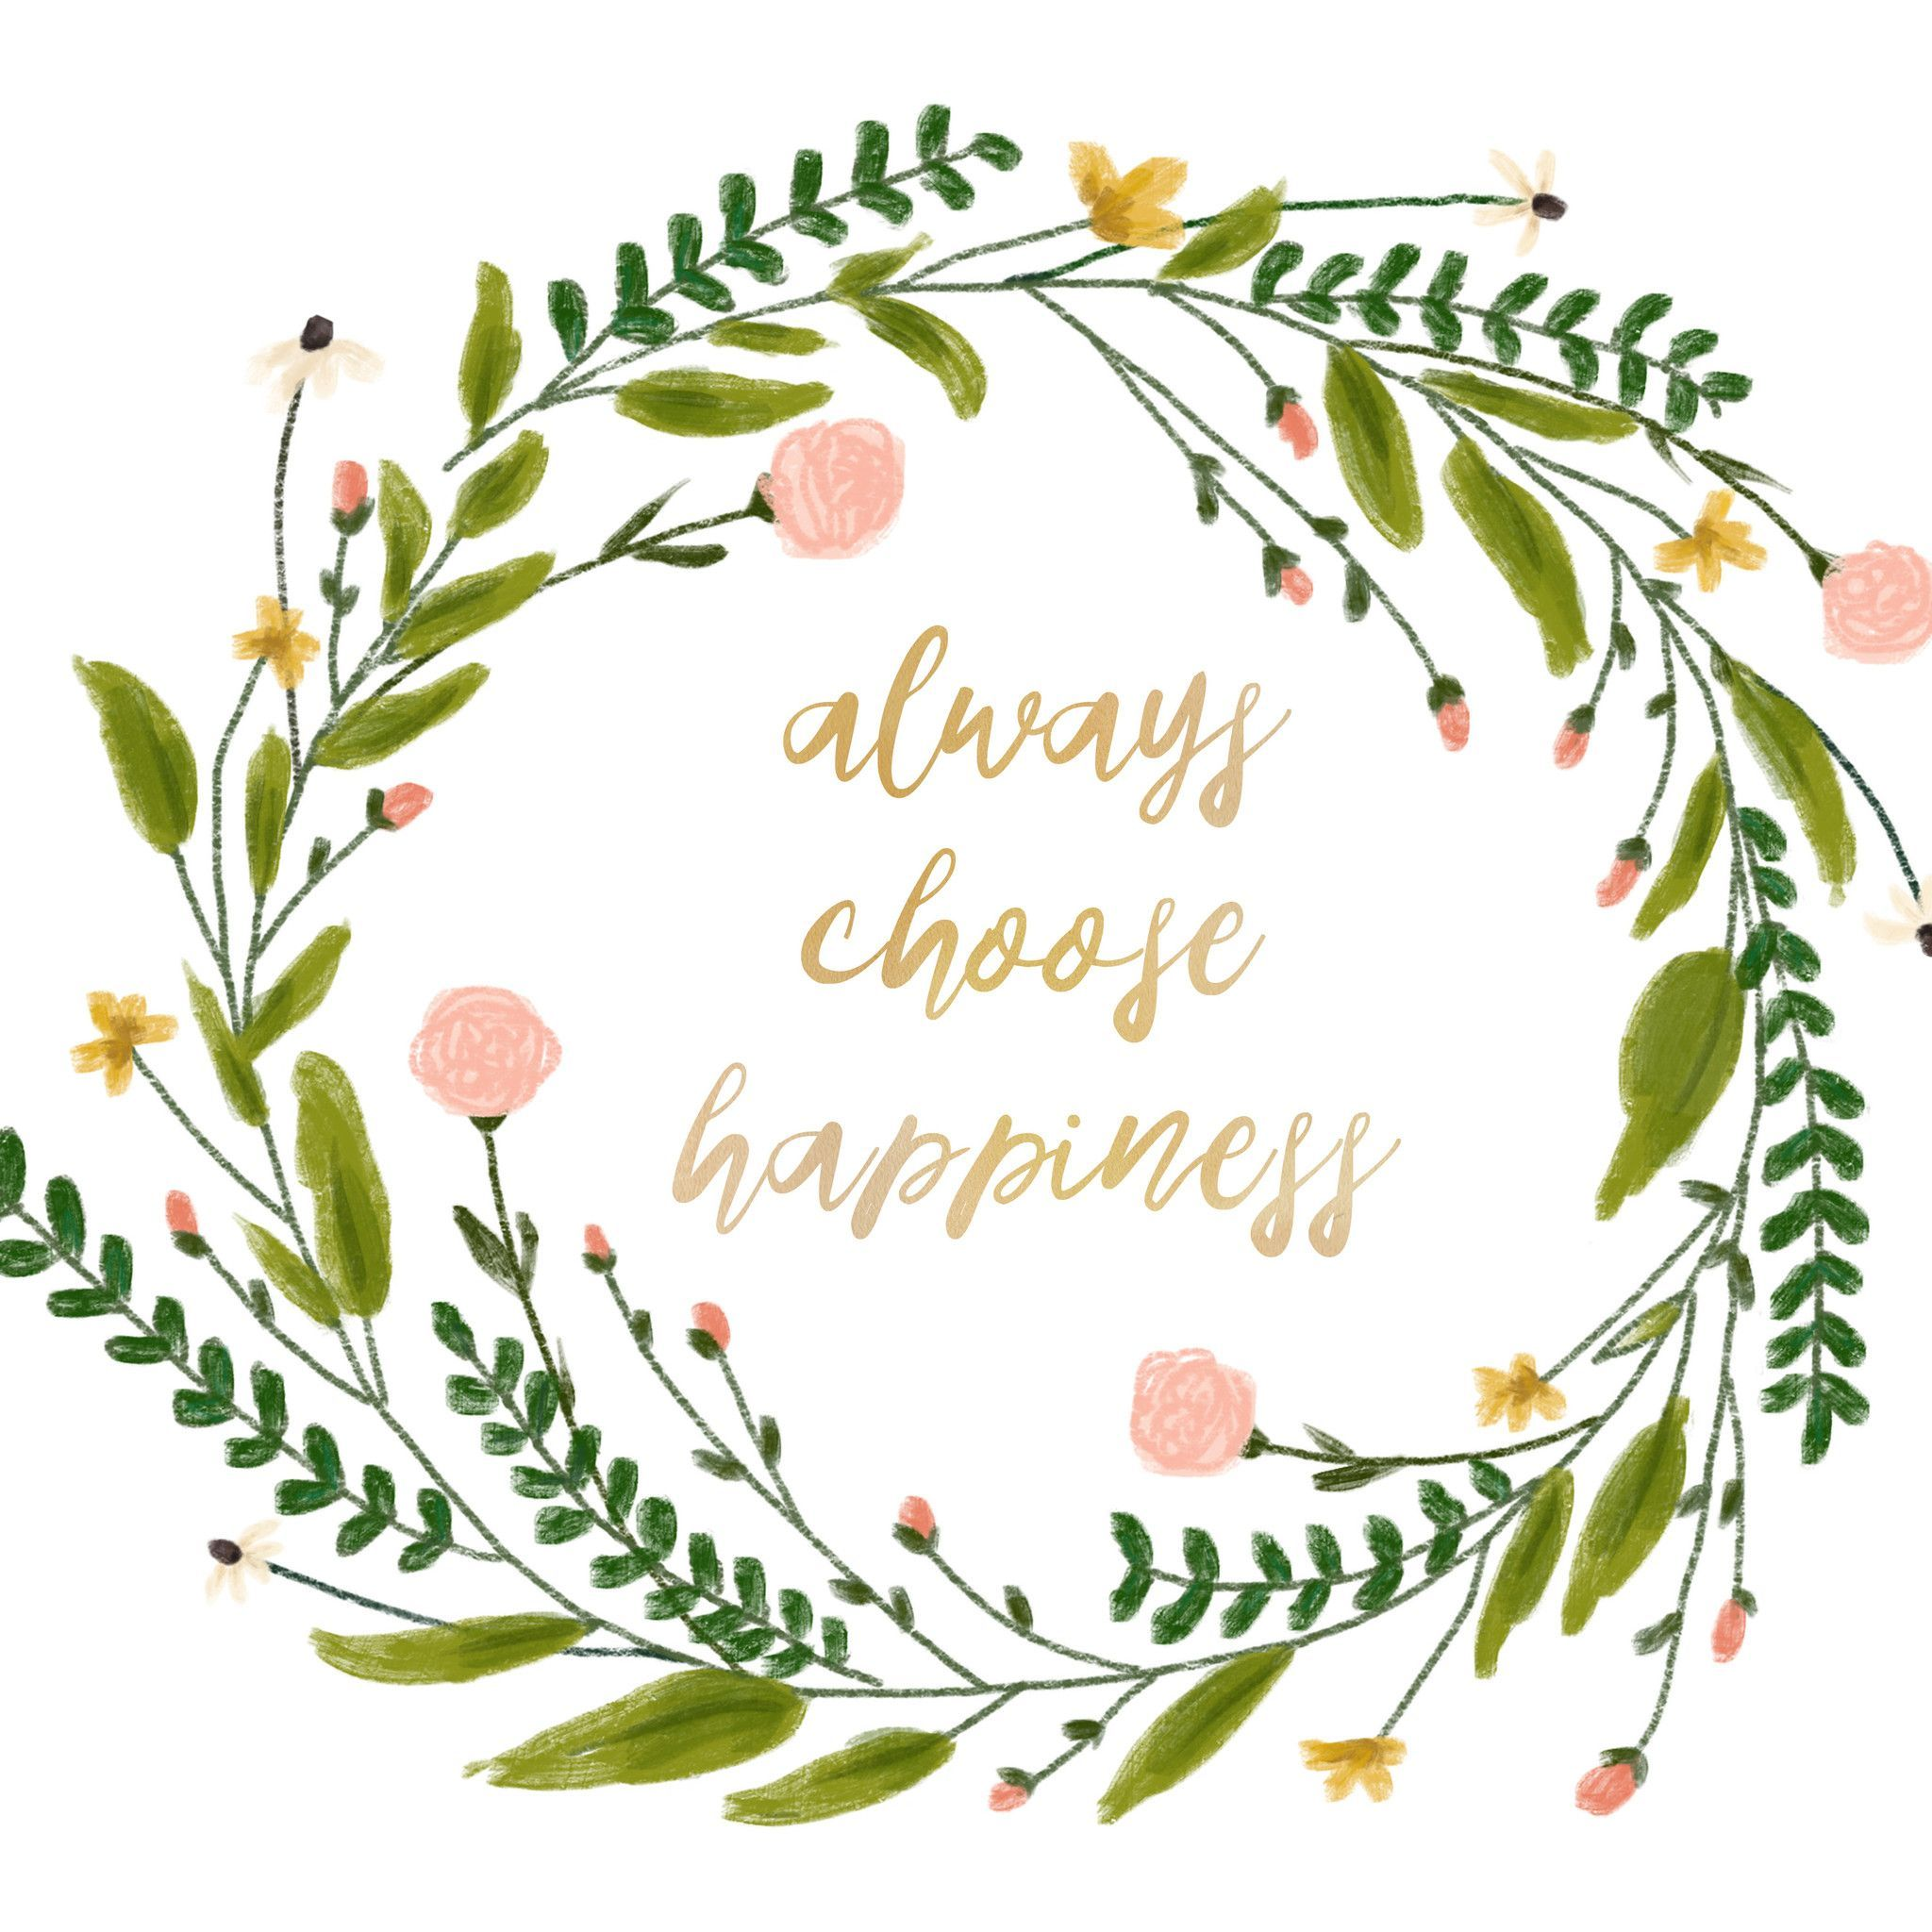 always choose happiness mustard yellow script